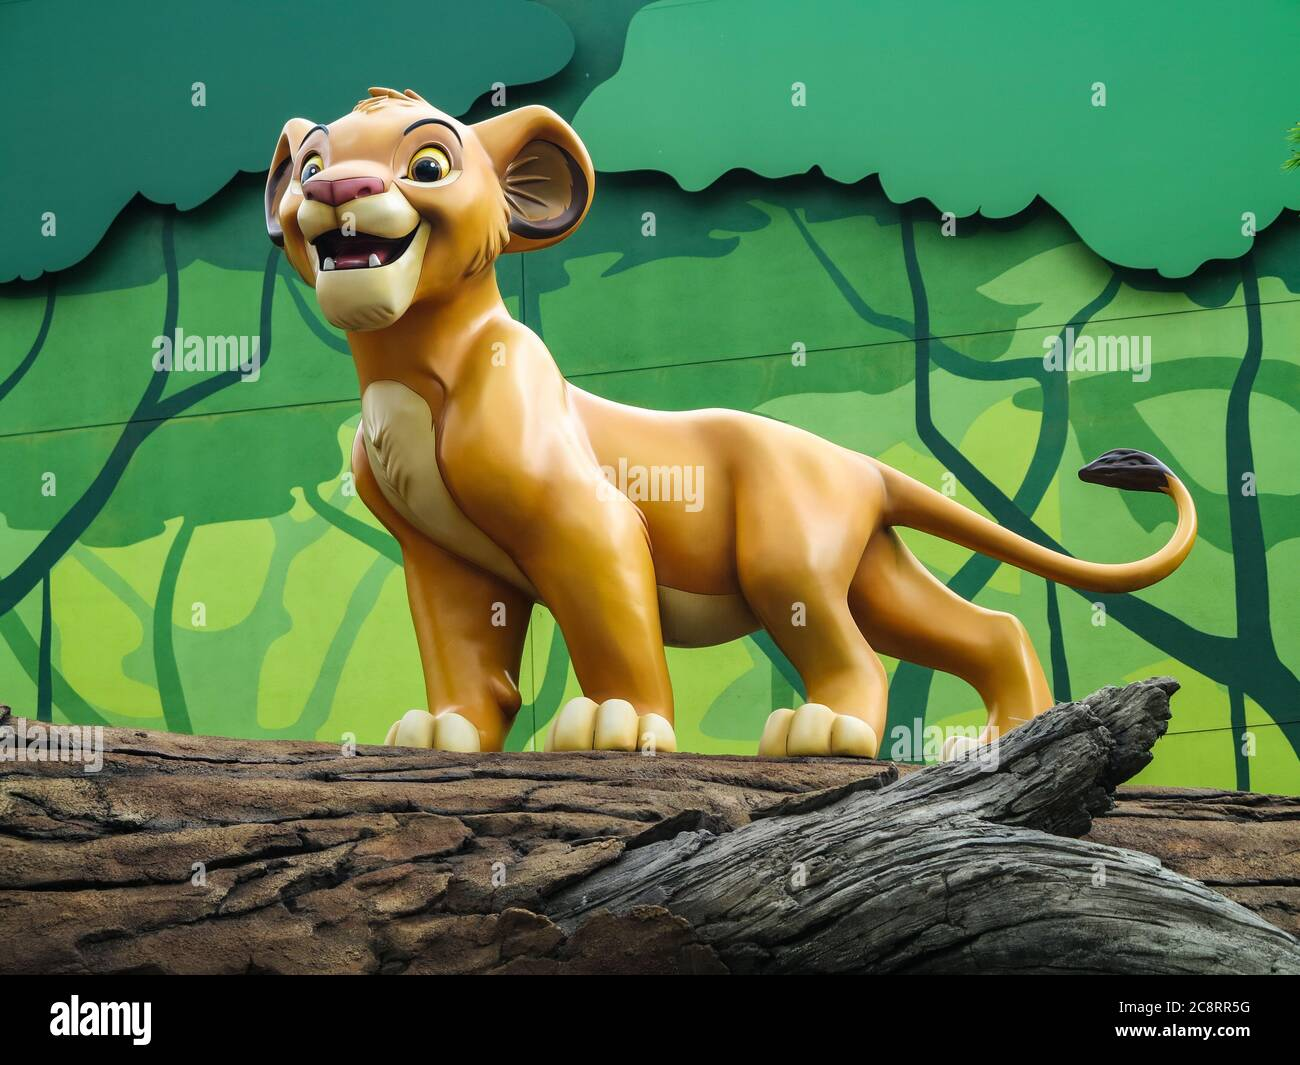 Simba Disney High Resolution Stock Photography and Images   Alamy